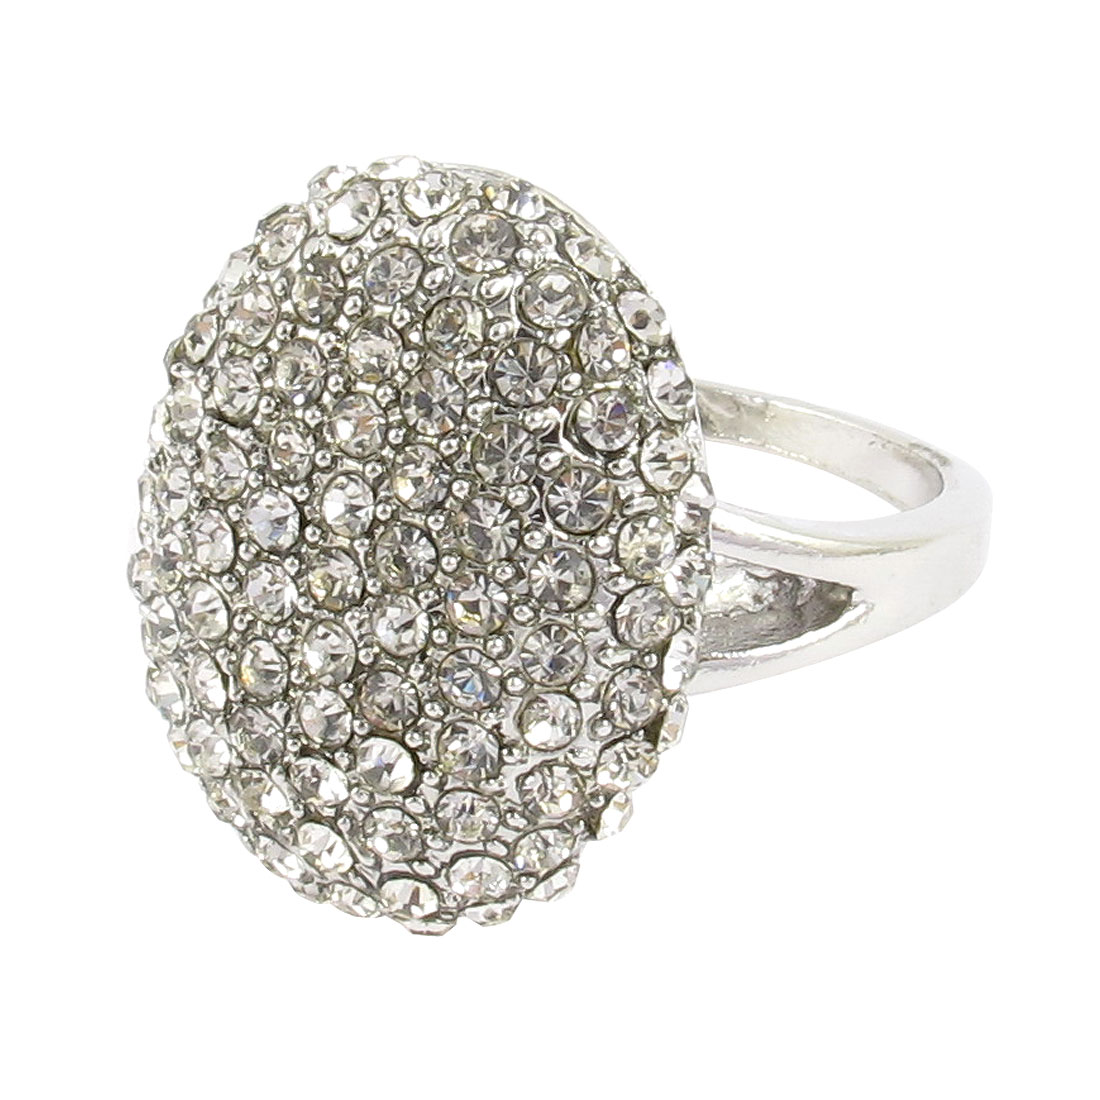 Woman Oval Style Rhinestone Inlaid Cluster Finger Ring Silver Tone US 8 3/4